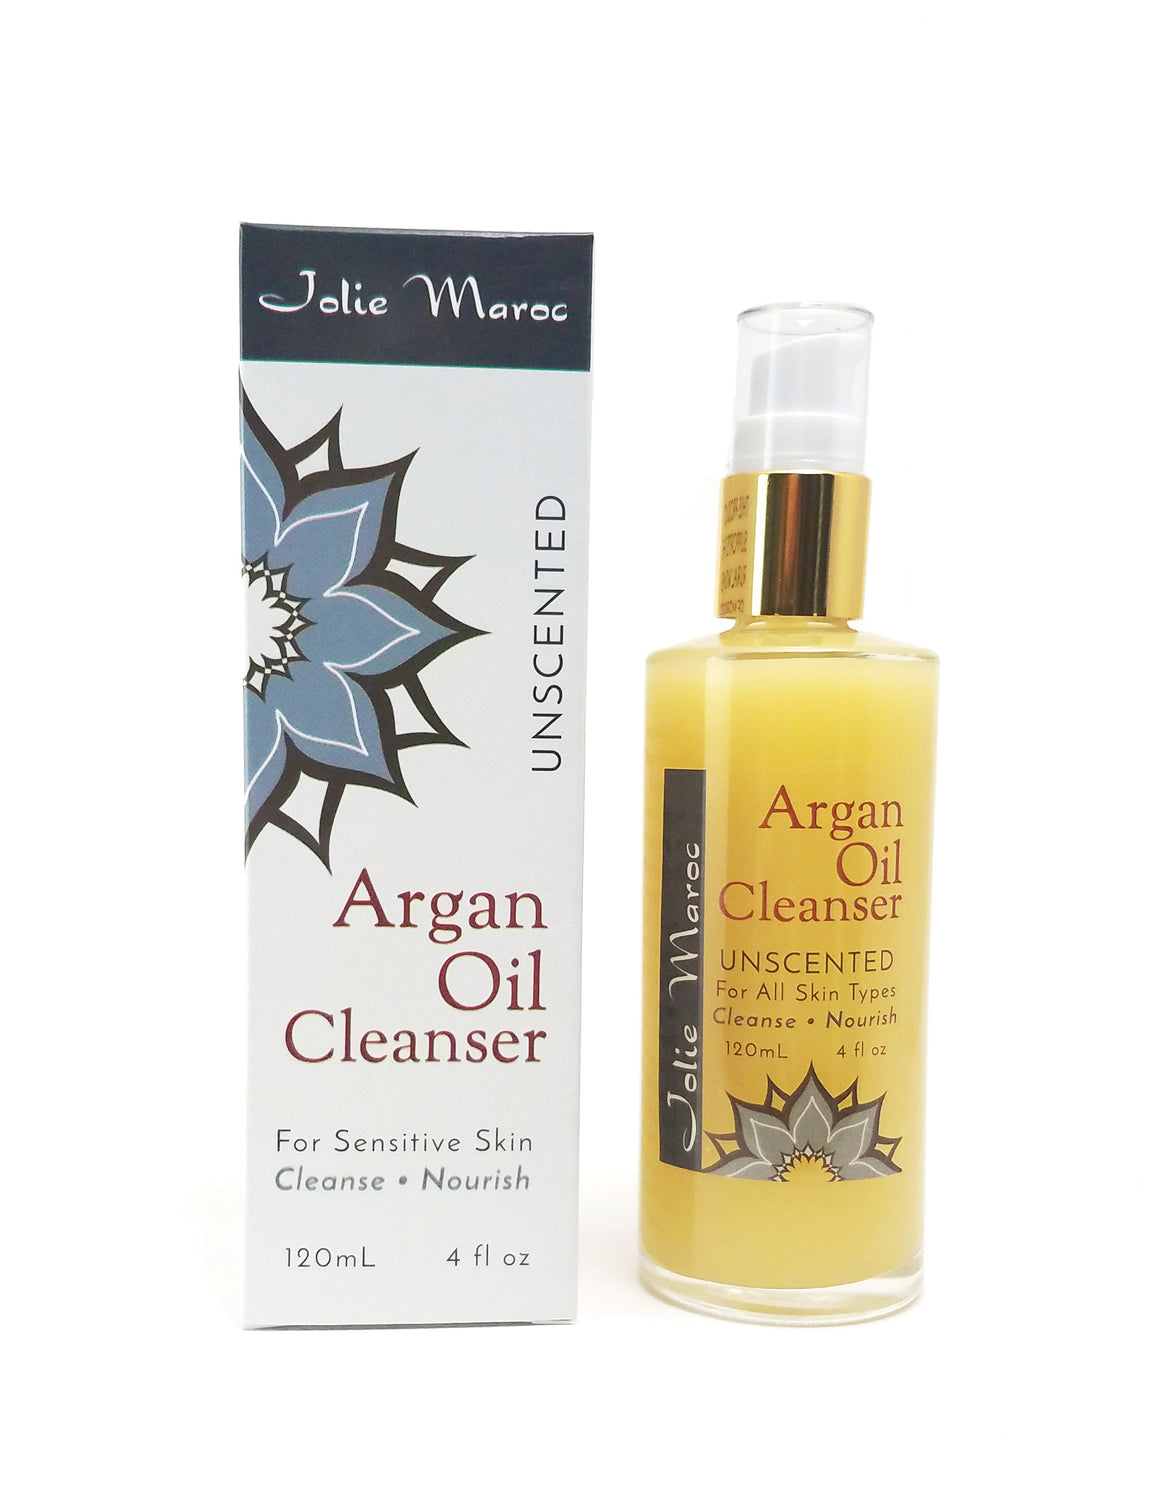 Argan Oil Cleanser - Unscented